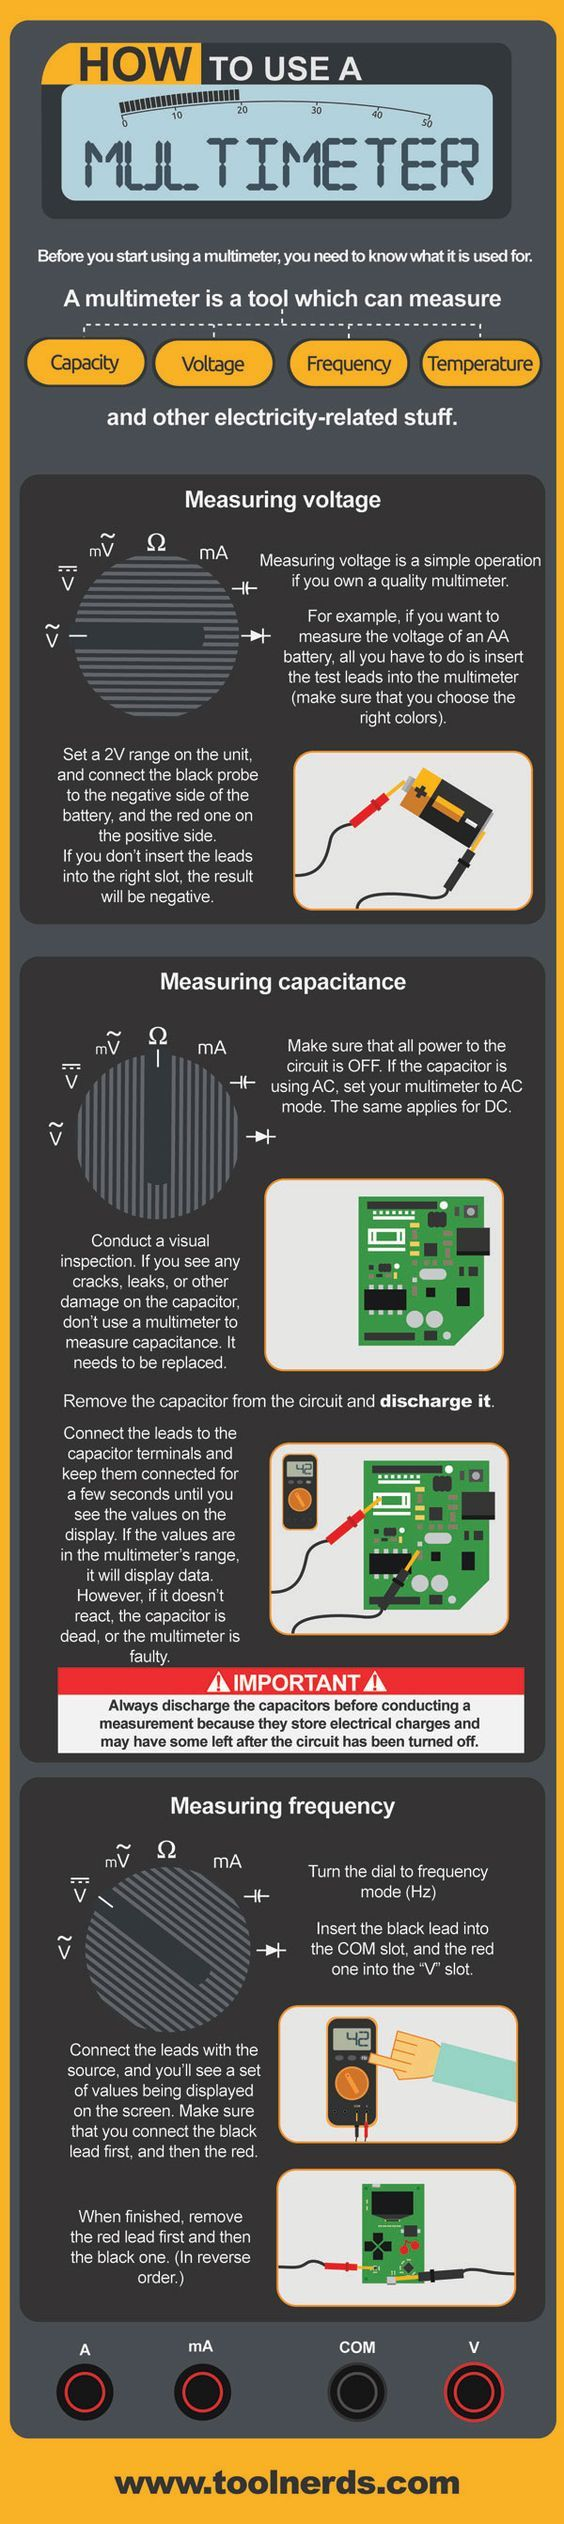 How To Use a Multimeter | Pinterest | Articles, Electrical wiring ...